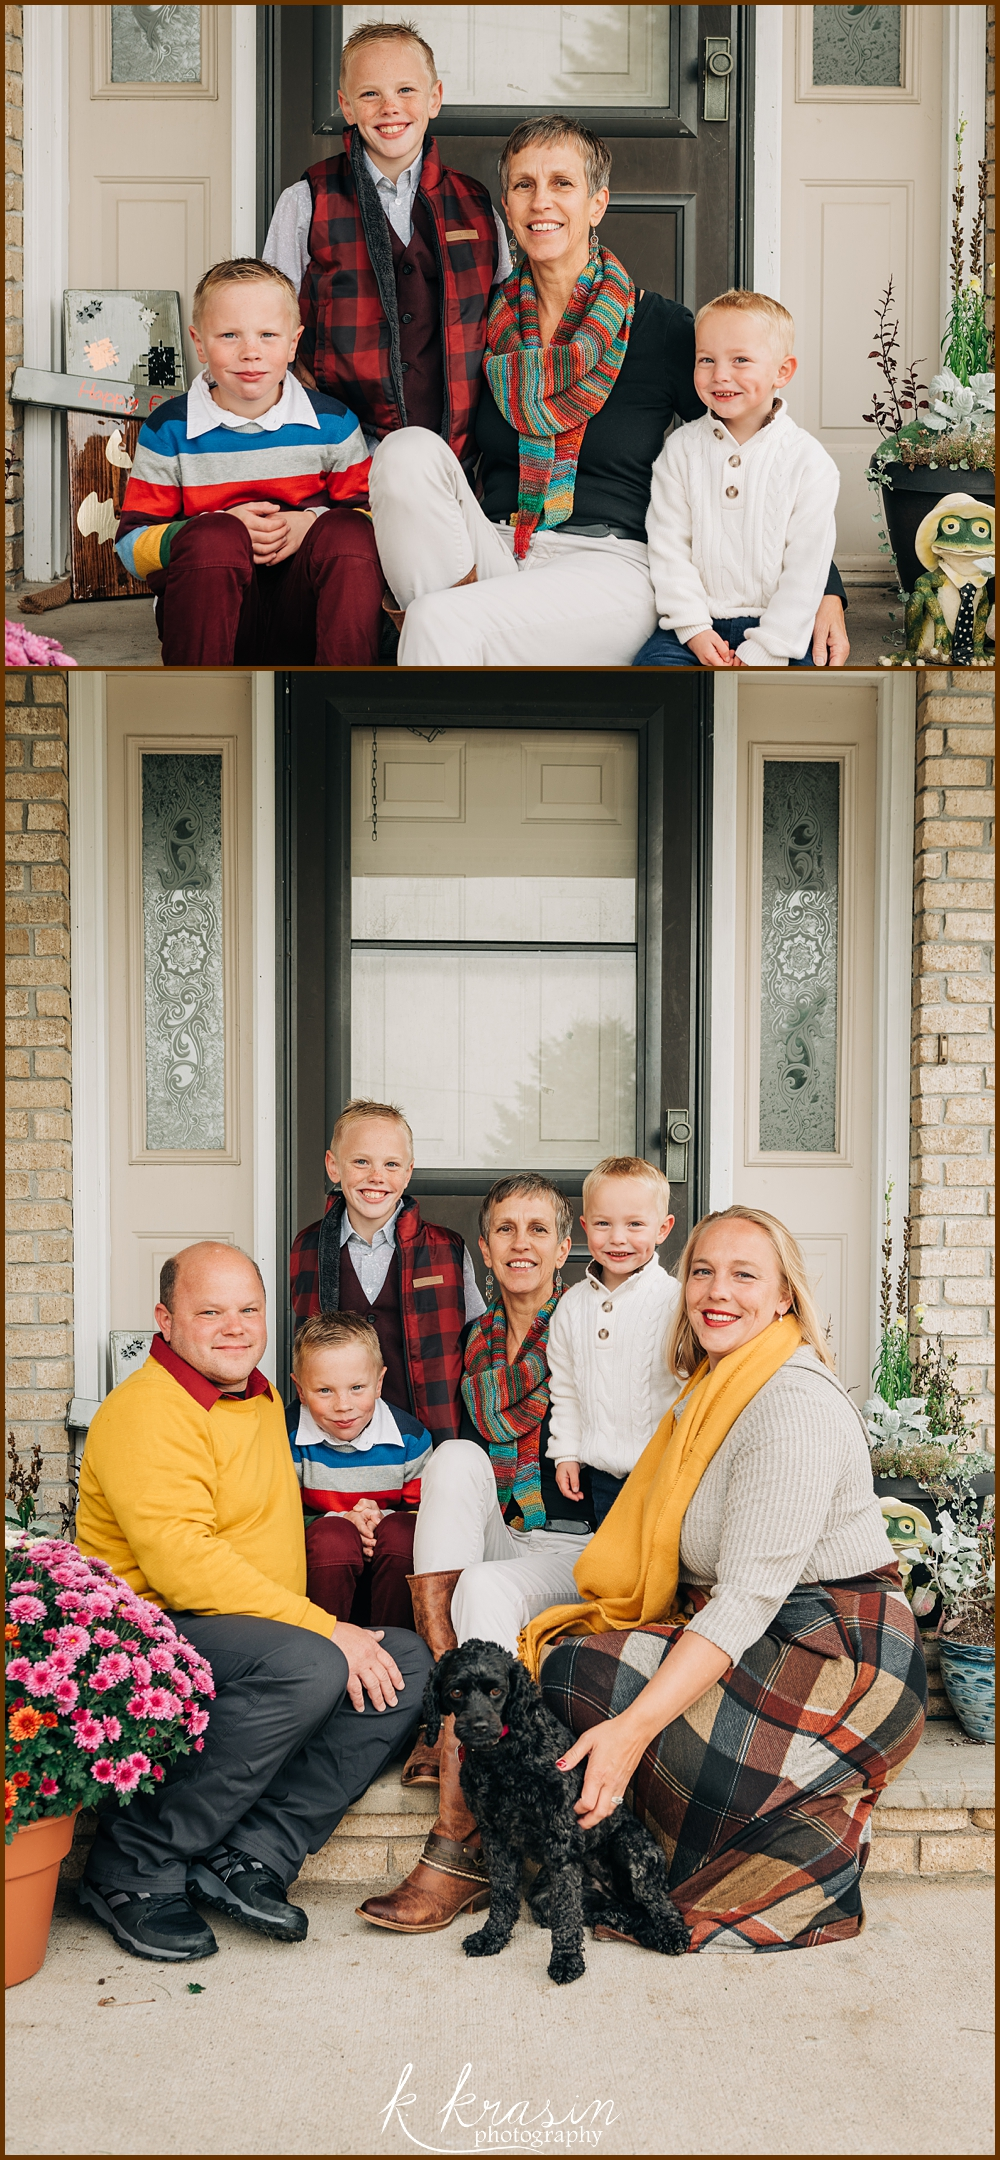 Collage of photos of family in front of house